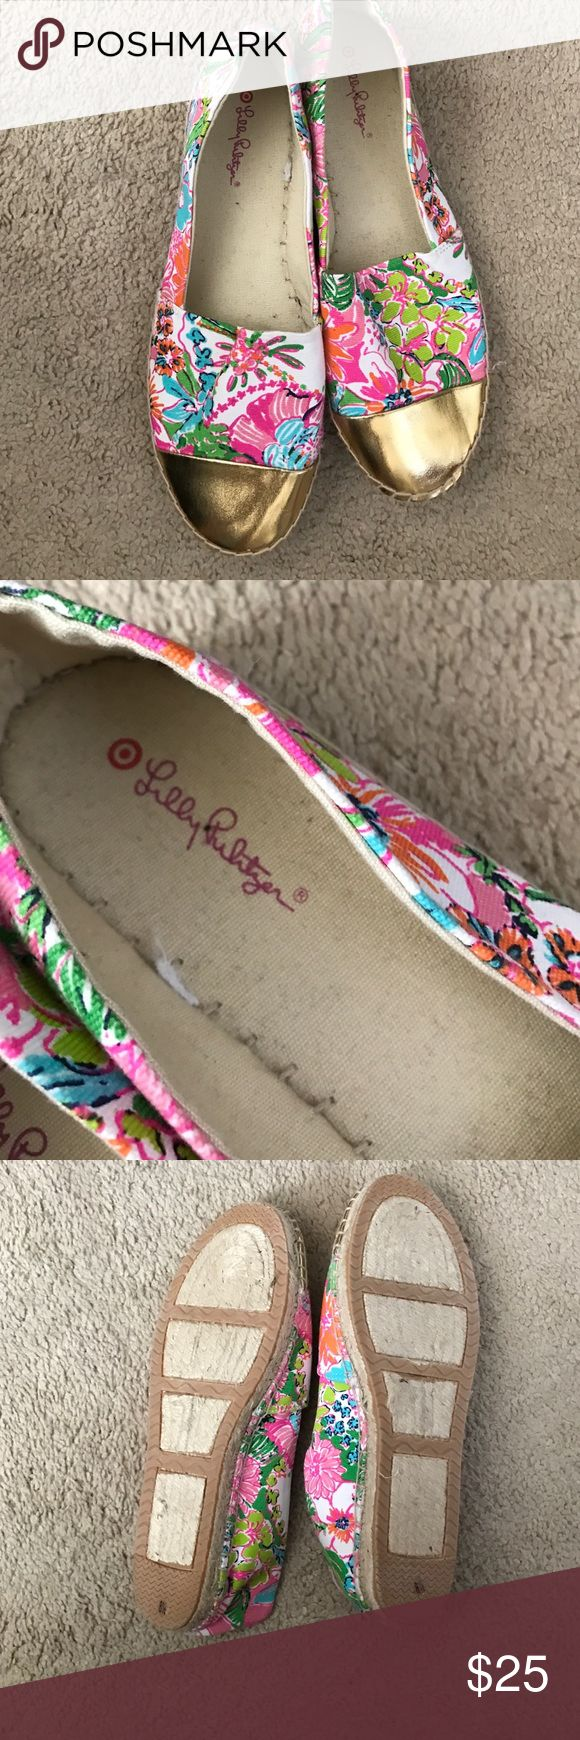 BRAND NEW RARE LILLY PULITZER FLORAL ESPADRILLES🌺 NEVER WORN Lilly Pulitzer FLORAL Espadrilles...sold out everywhere! From the Target Line...size 8.5 adorable and comfortable! Lilly Pulitzer Shoes Espadrilles